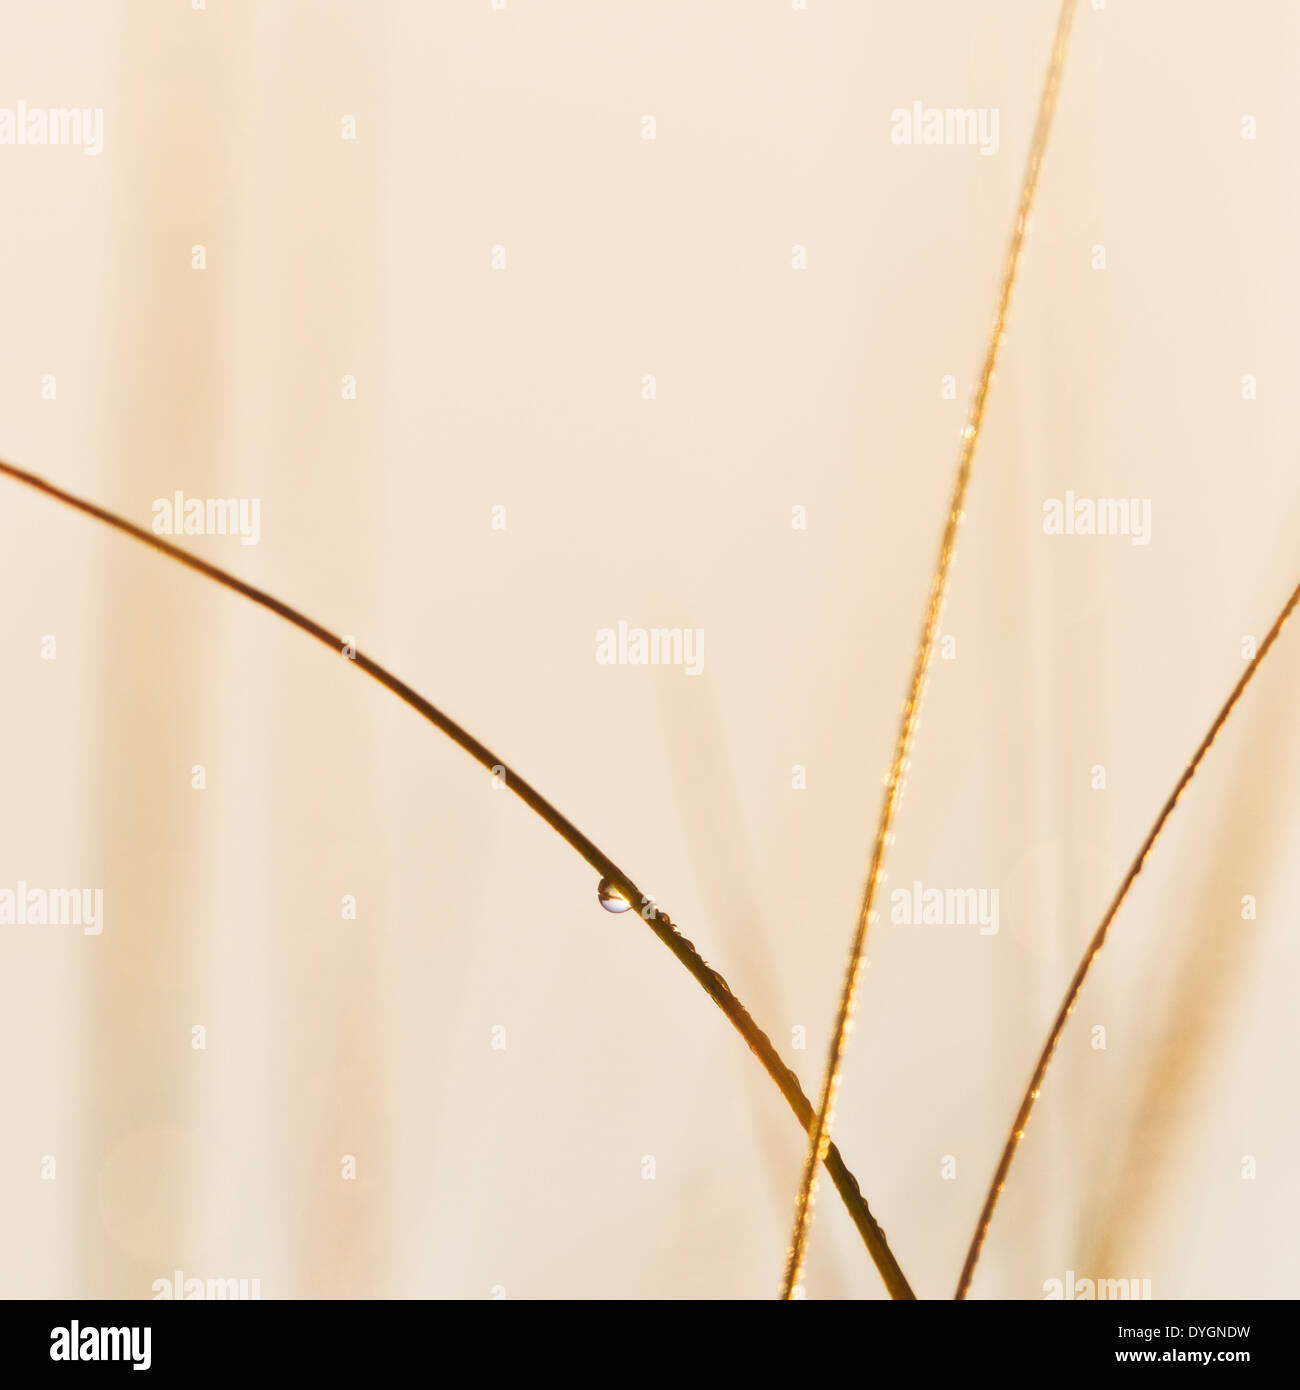 Close-up of blade of grass, Hunneberg, Vastra Gotaland County, Sweden - Stock Image